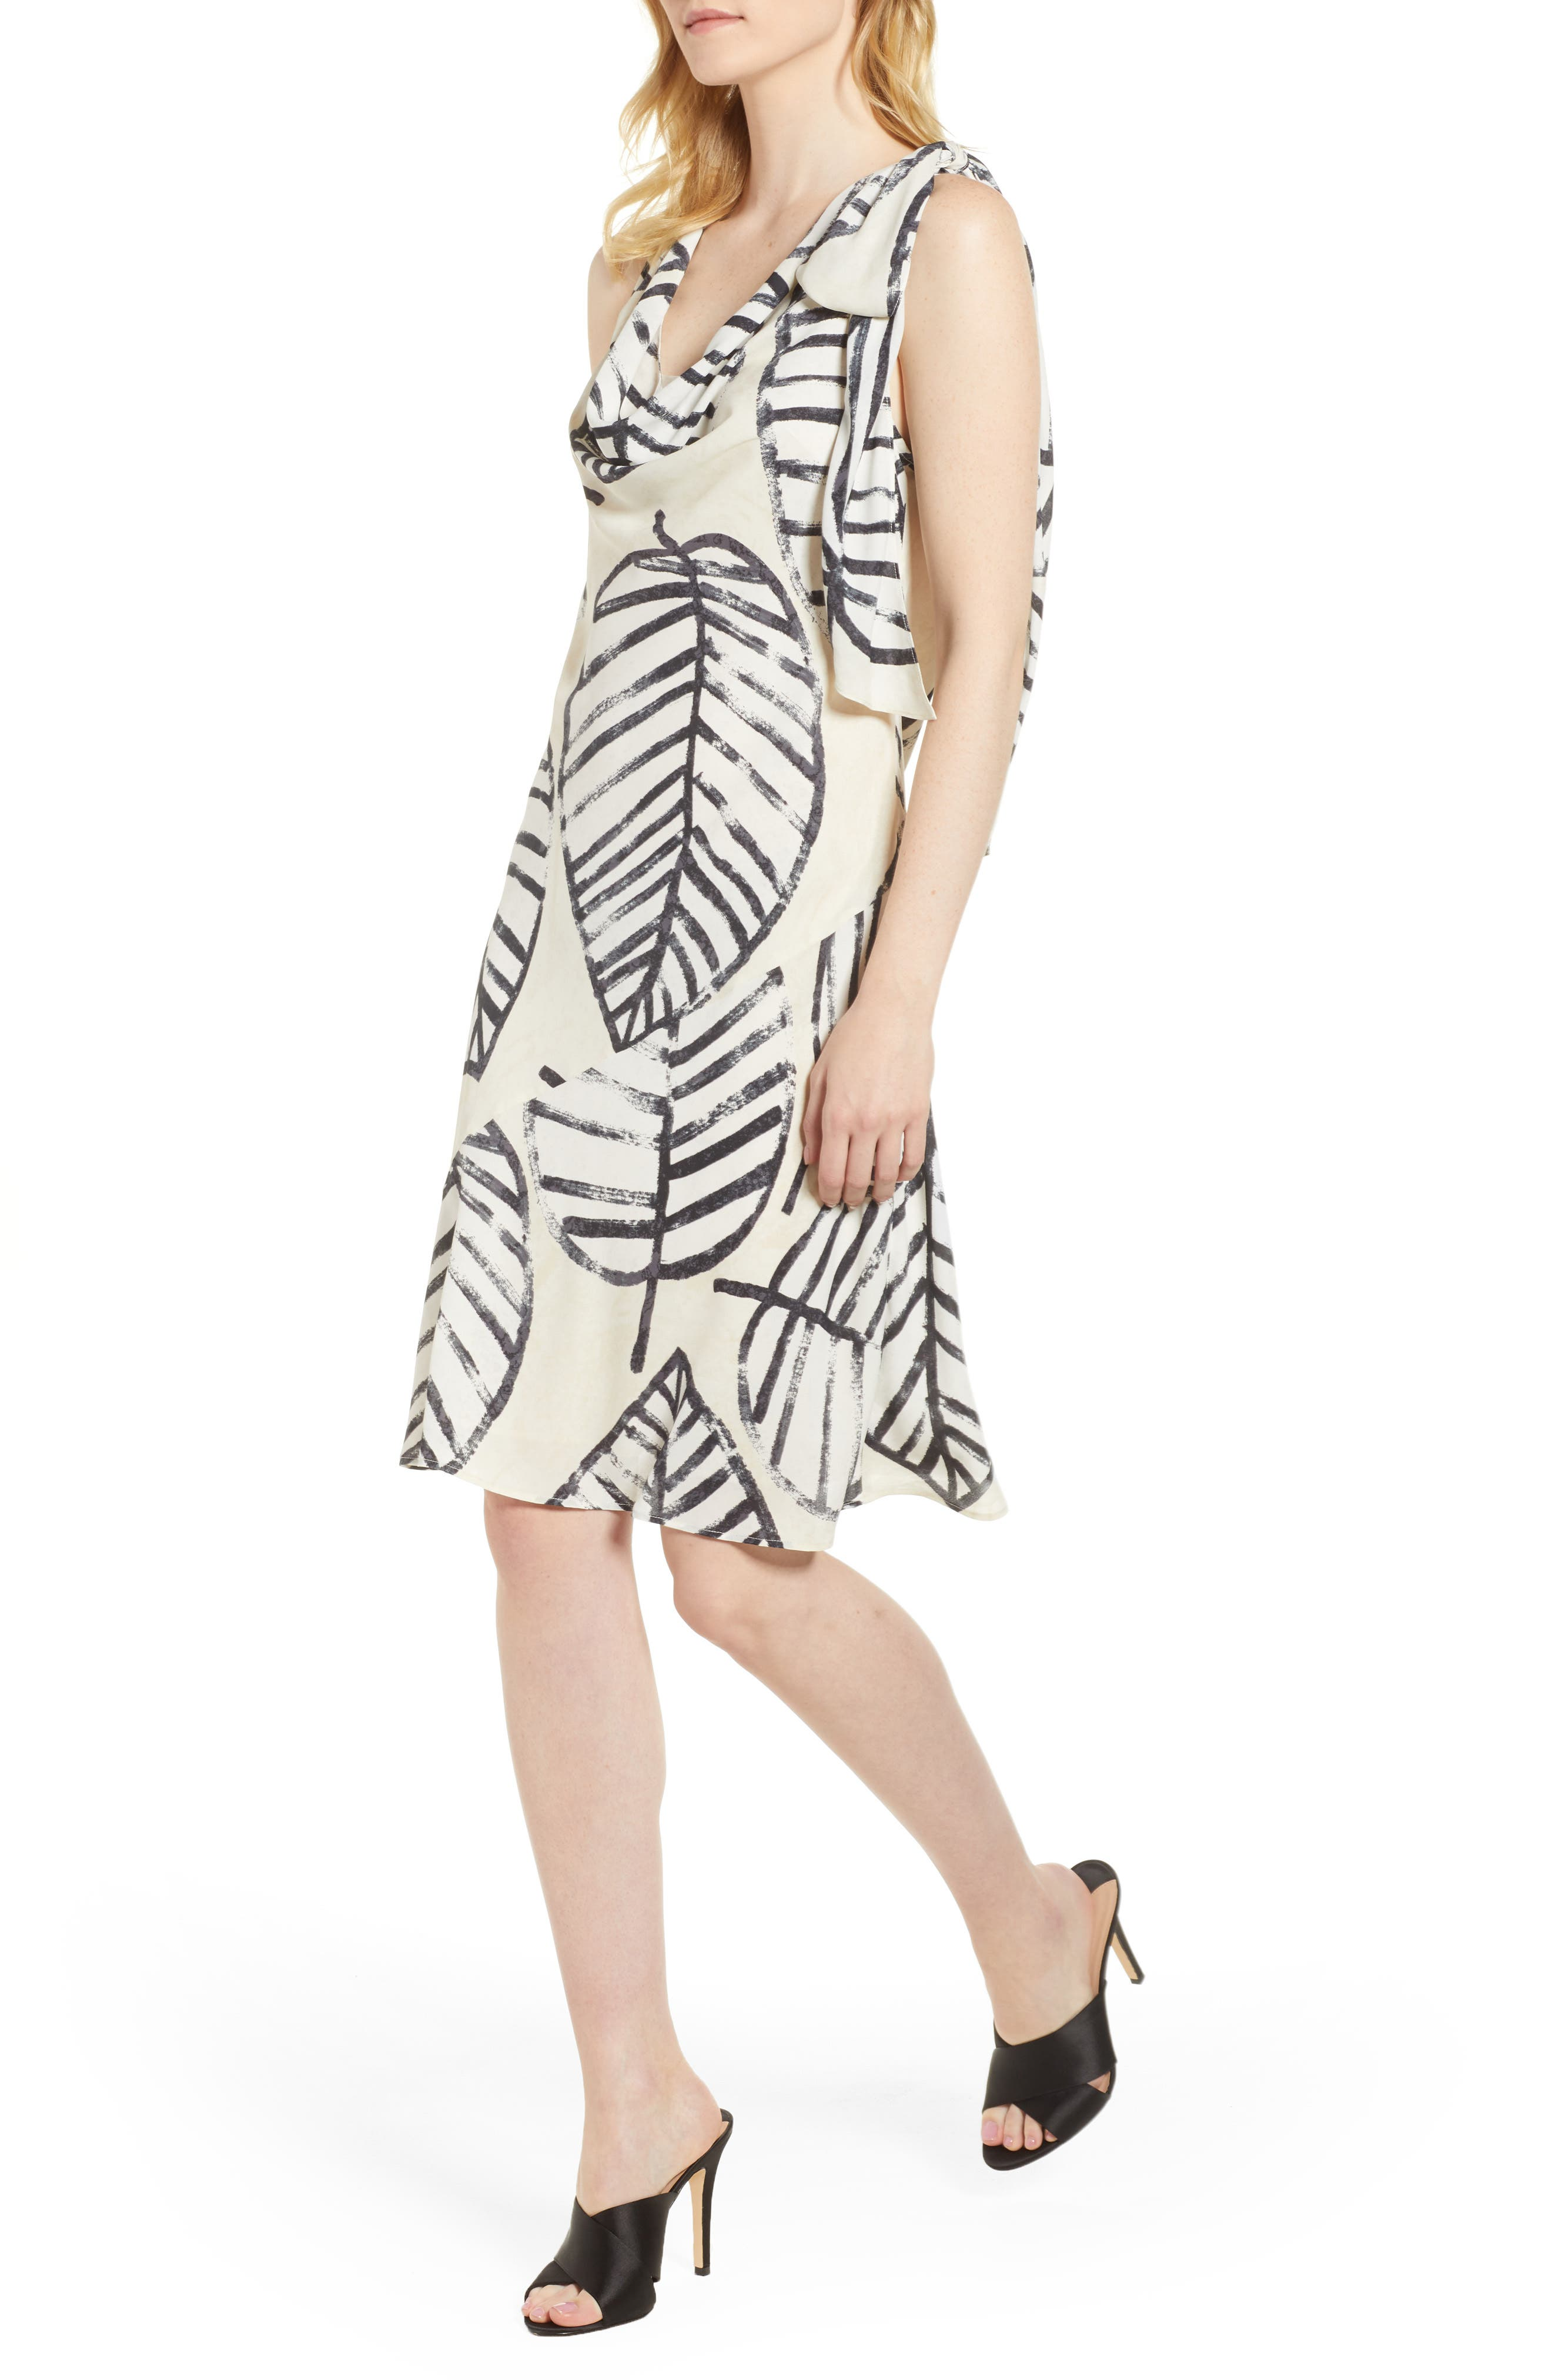 Etched Leaves Tie Dress,                             Main thumbnail 1, color,                             250